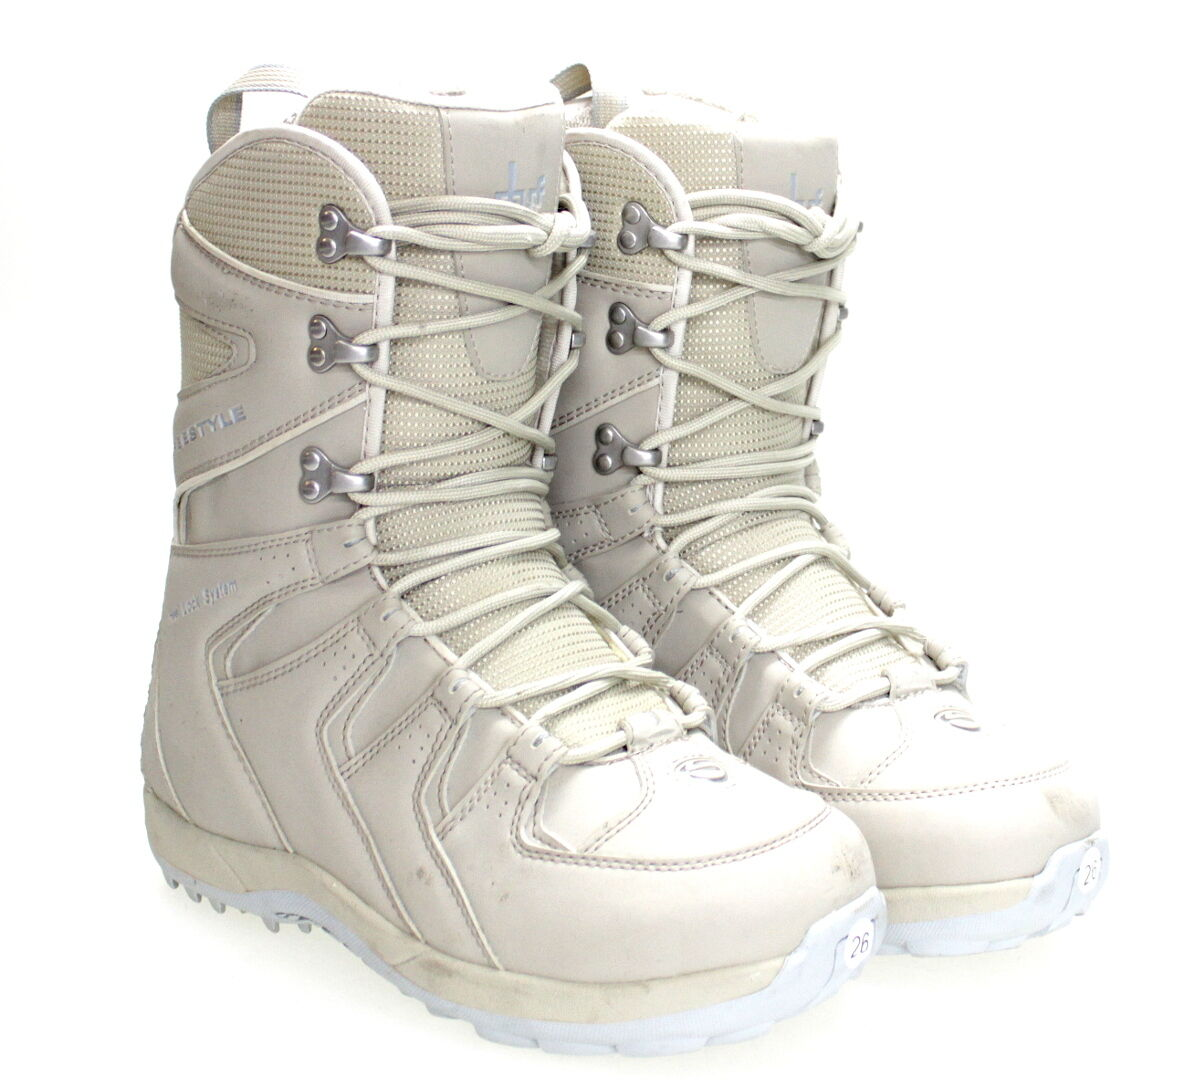 Stuf Freestyle Soft Boot Lady Size 40.5 Snowboard shoes Women's Boat S-N